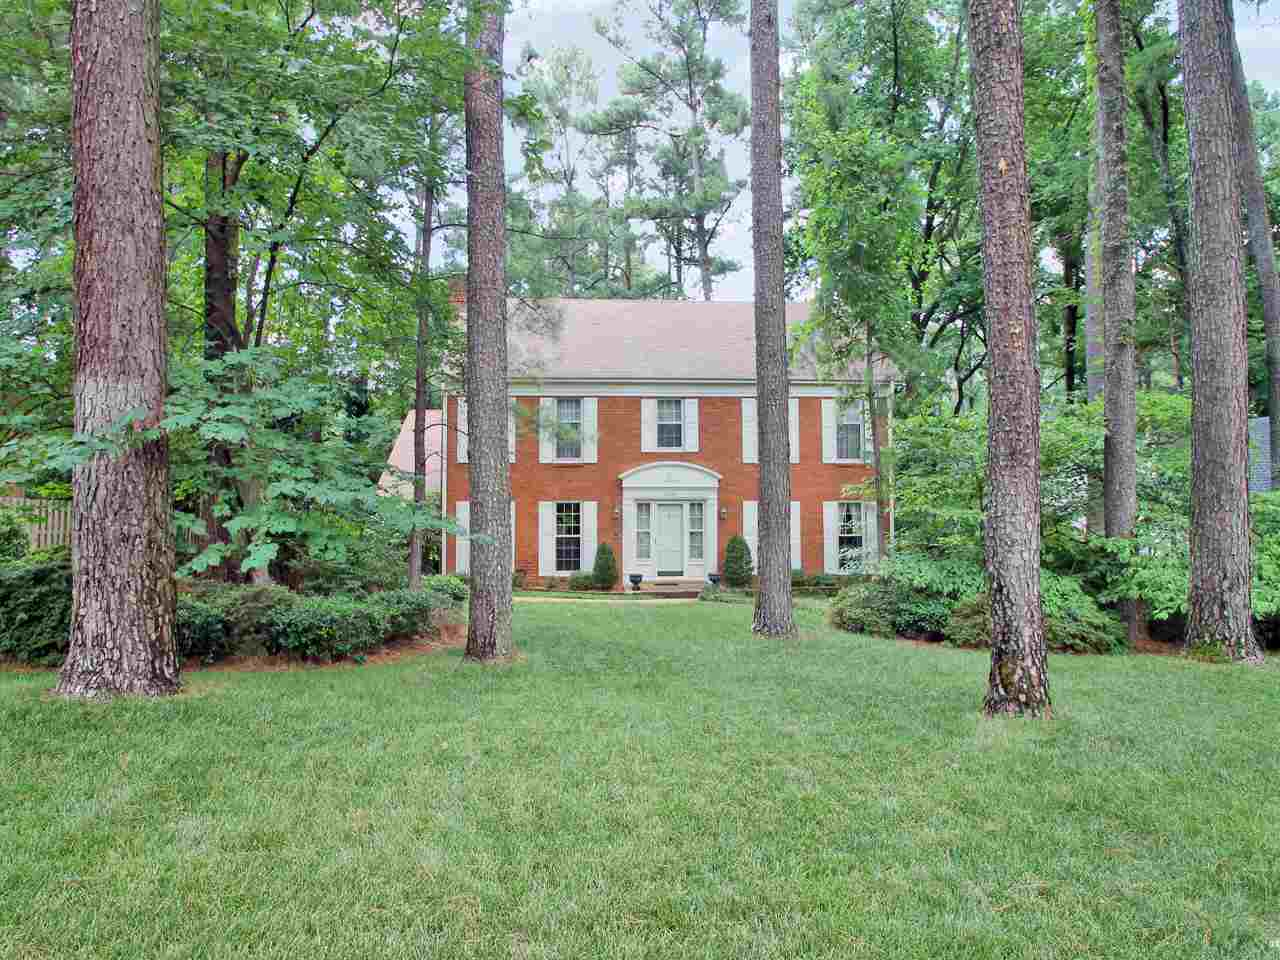 8260 Bryn Manor Germantown, TN 38139 - MLS #: 10006922